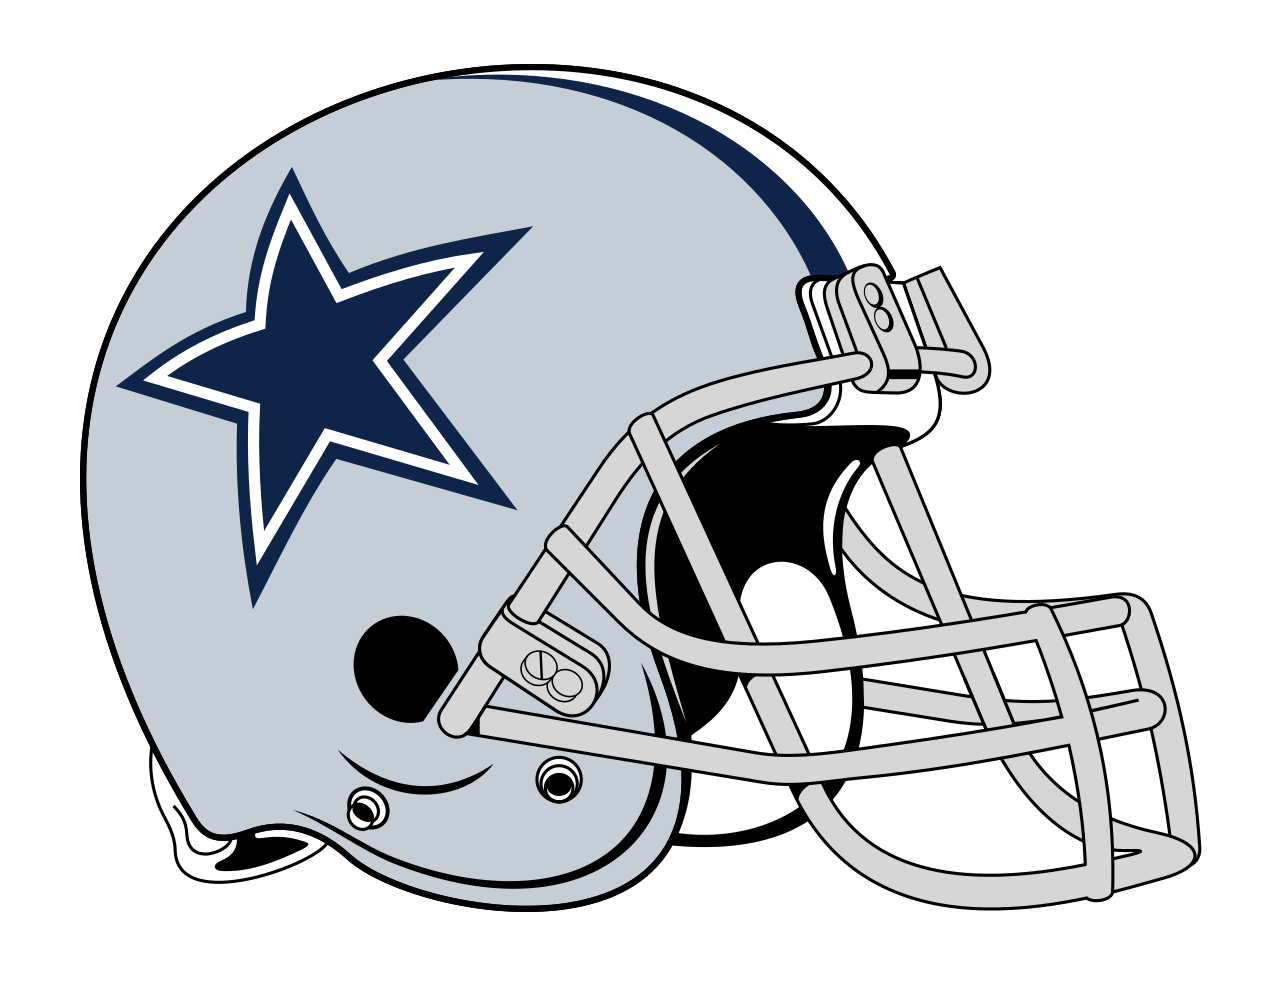 Dallas cowboys logo 1098 Free Transparent PNG Logos